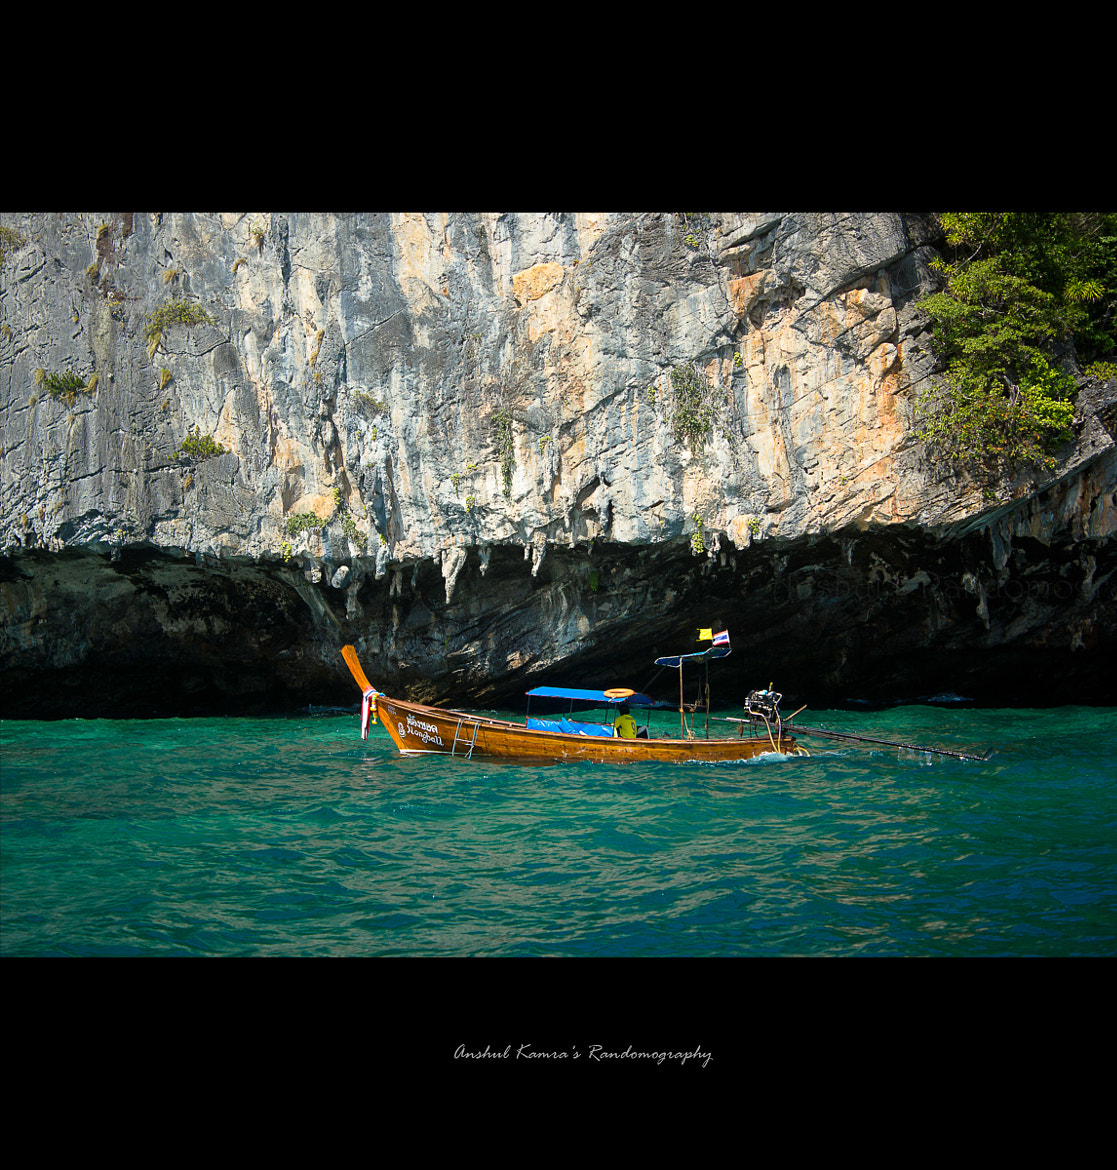 Photograph In Emerald Waters by Anshul Kamra on 500px